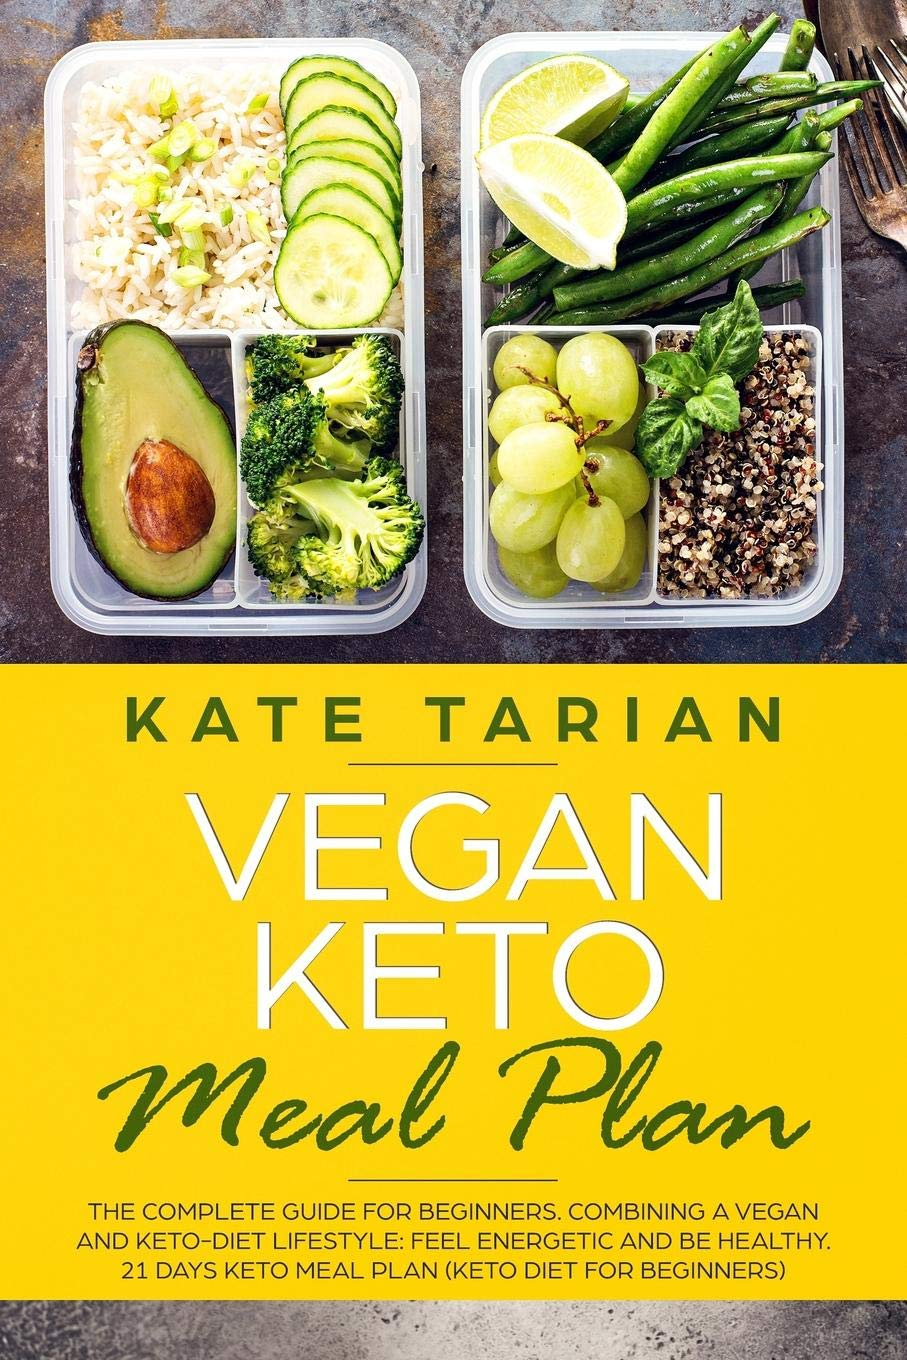 Vegan Keto Meal Plan The Complete Guide For Beginners Combining A Vegan And Keto Diet Lifestyle Feel Energetic And Be Healthy 21 Days Keto Meal Plan Keto Diet For Beginners Amazon Co Uk Tarian Kate 9781081579807